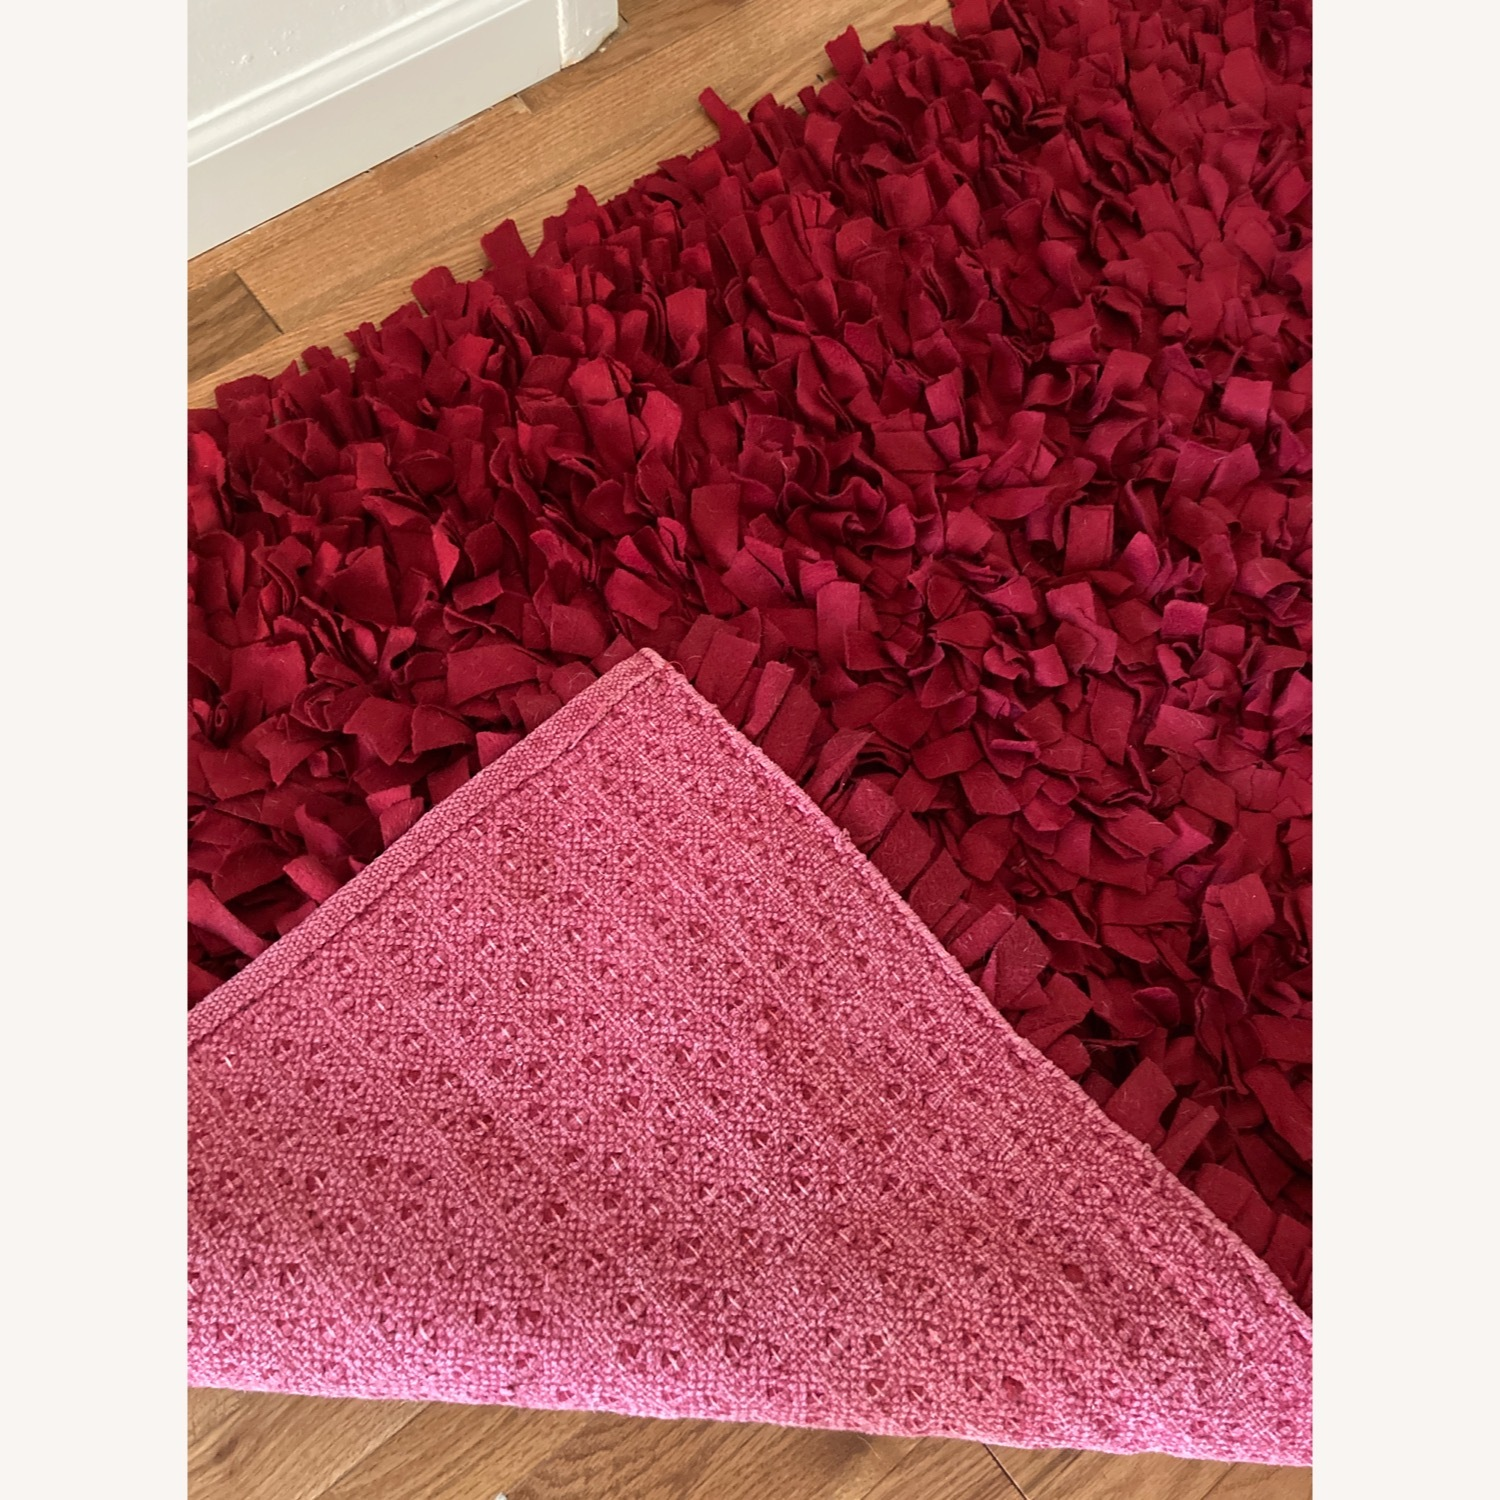 ABC Carpet & Home Red Wool Felted Rug - image-4